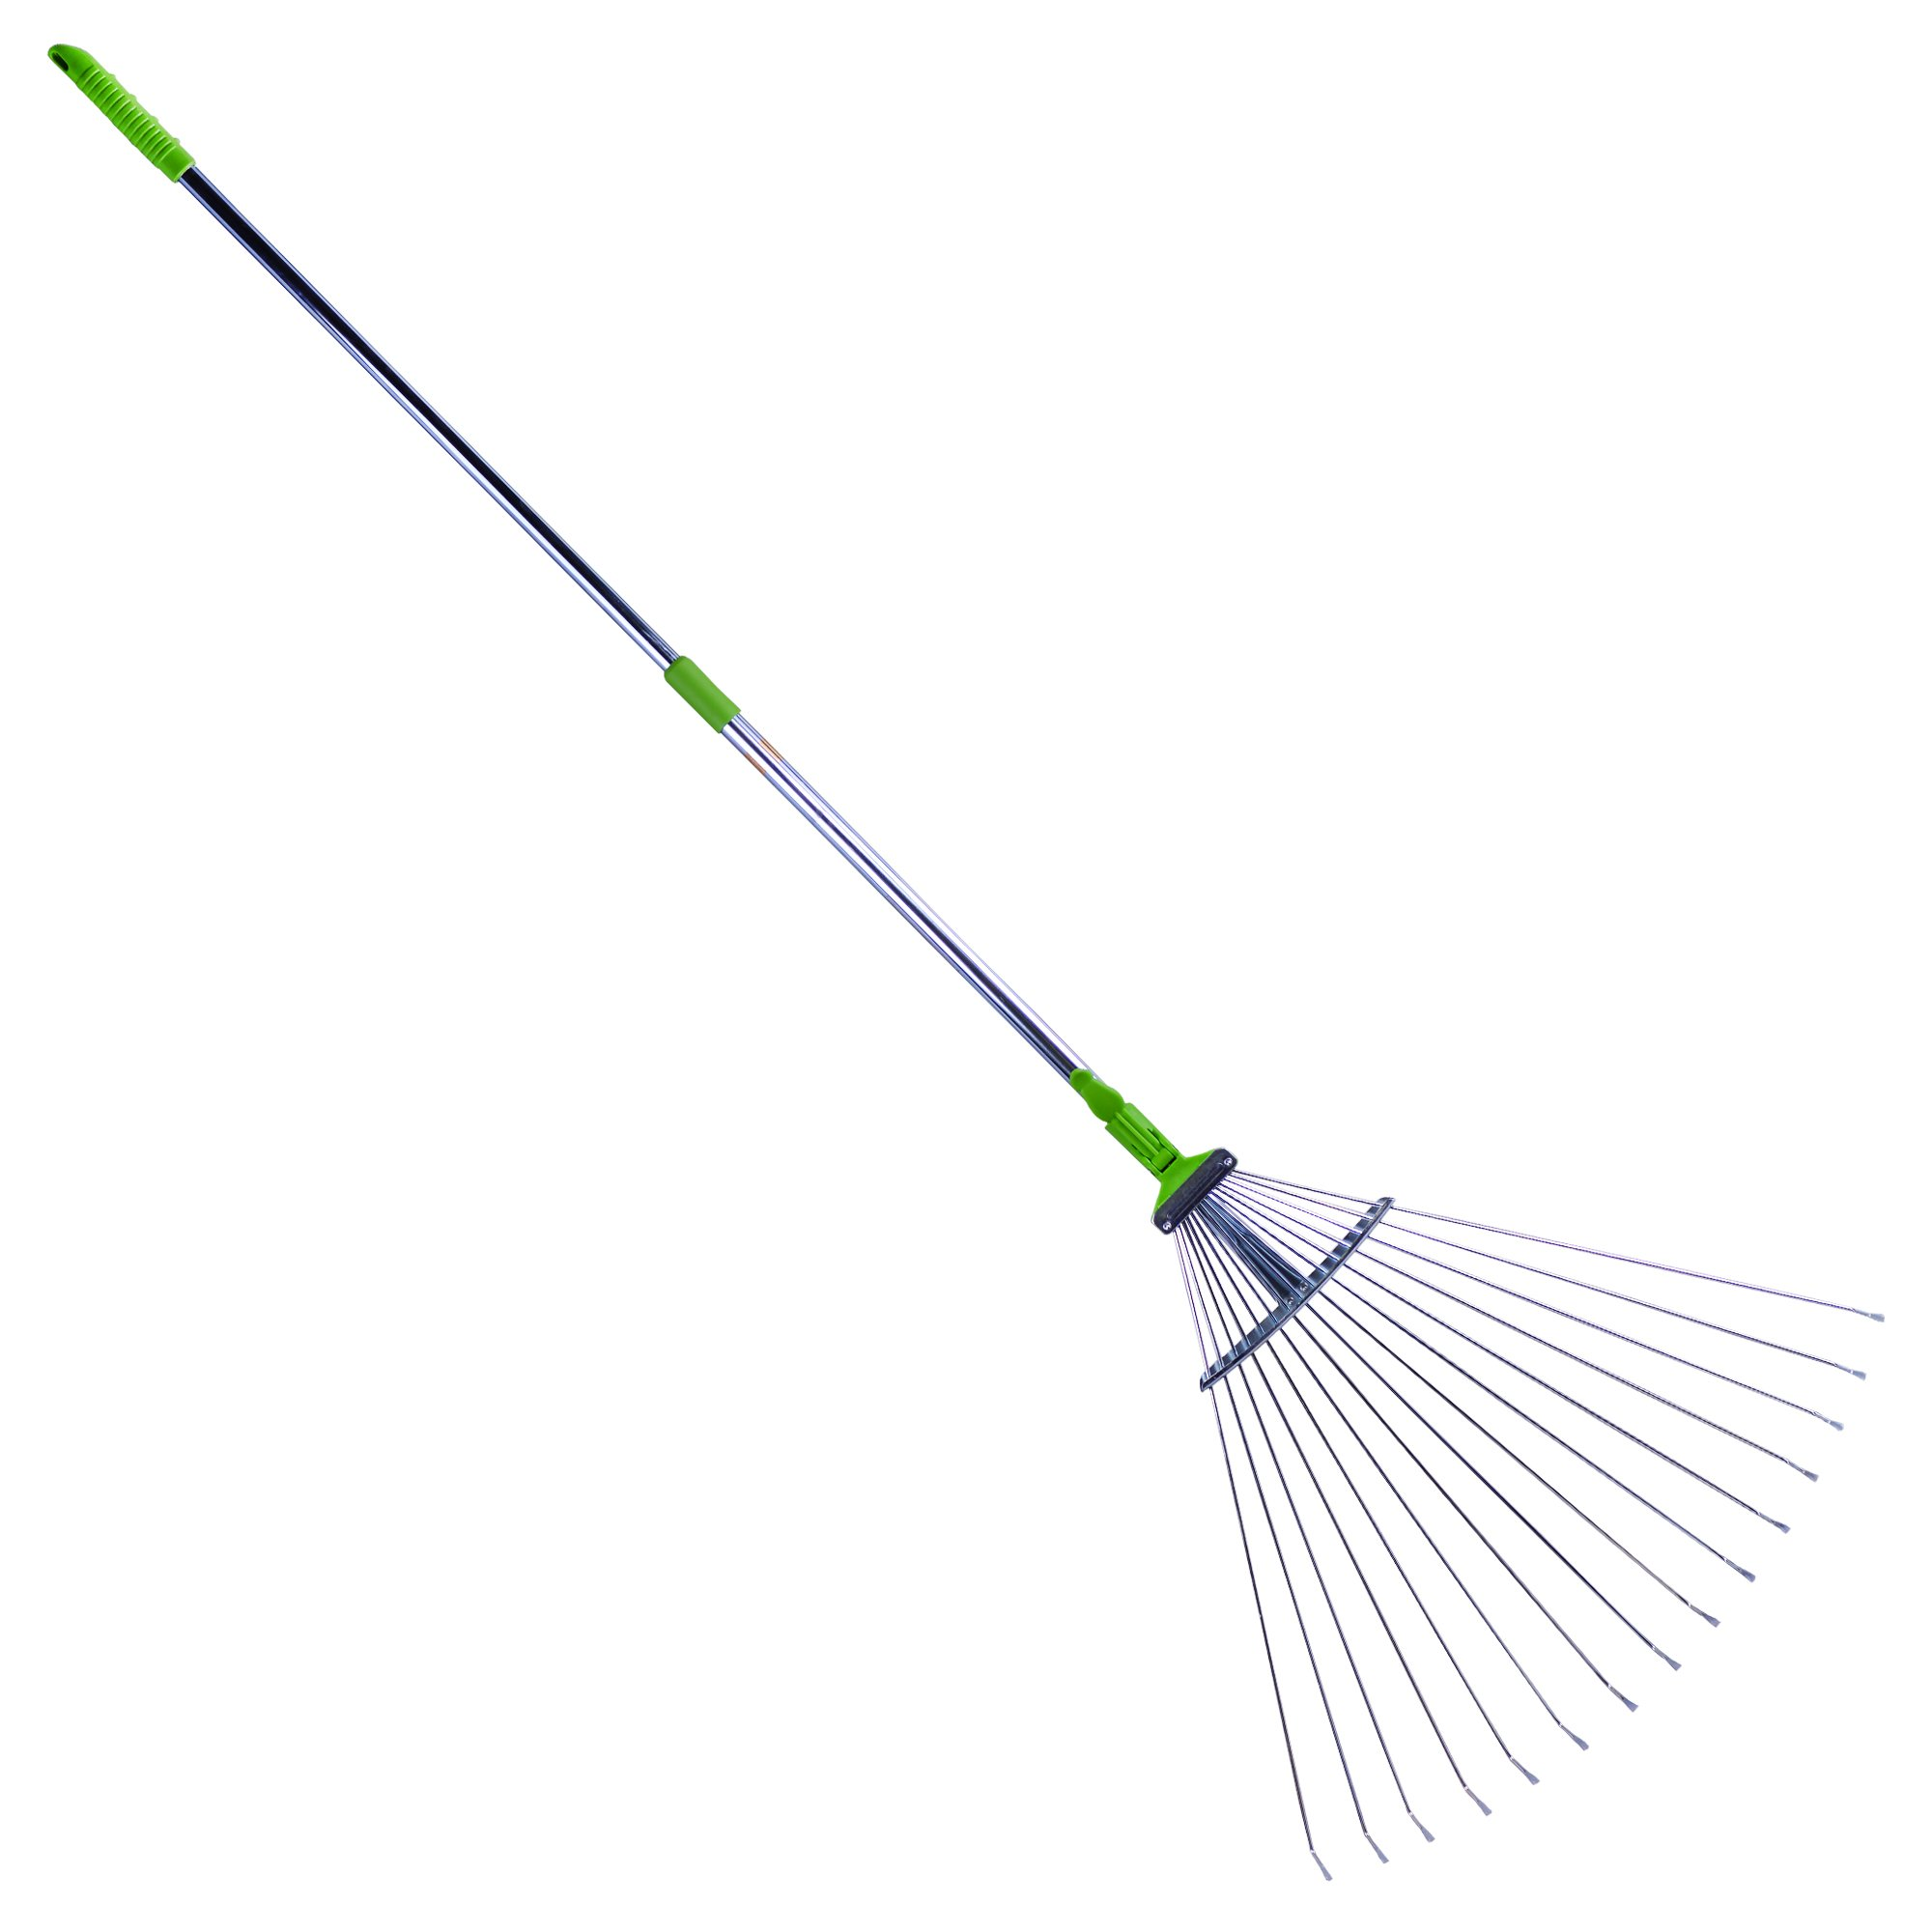 Sharpex Adjustable Garden Leaf Rake (7 inch - 37 inch, Green) product image